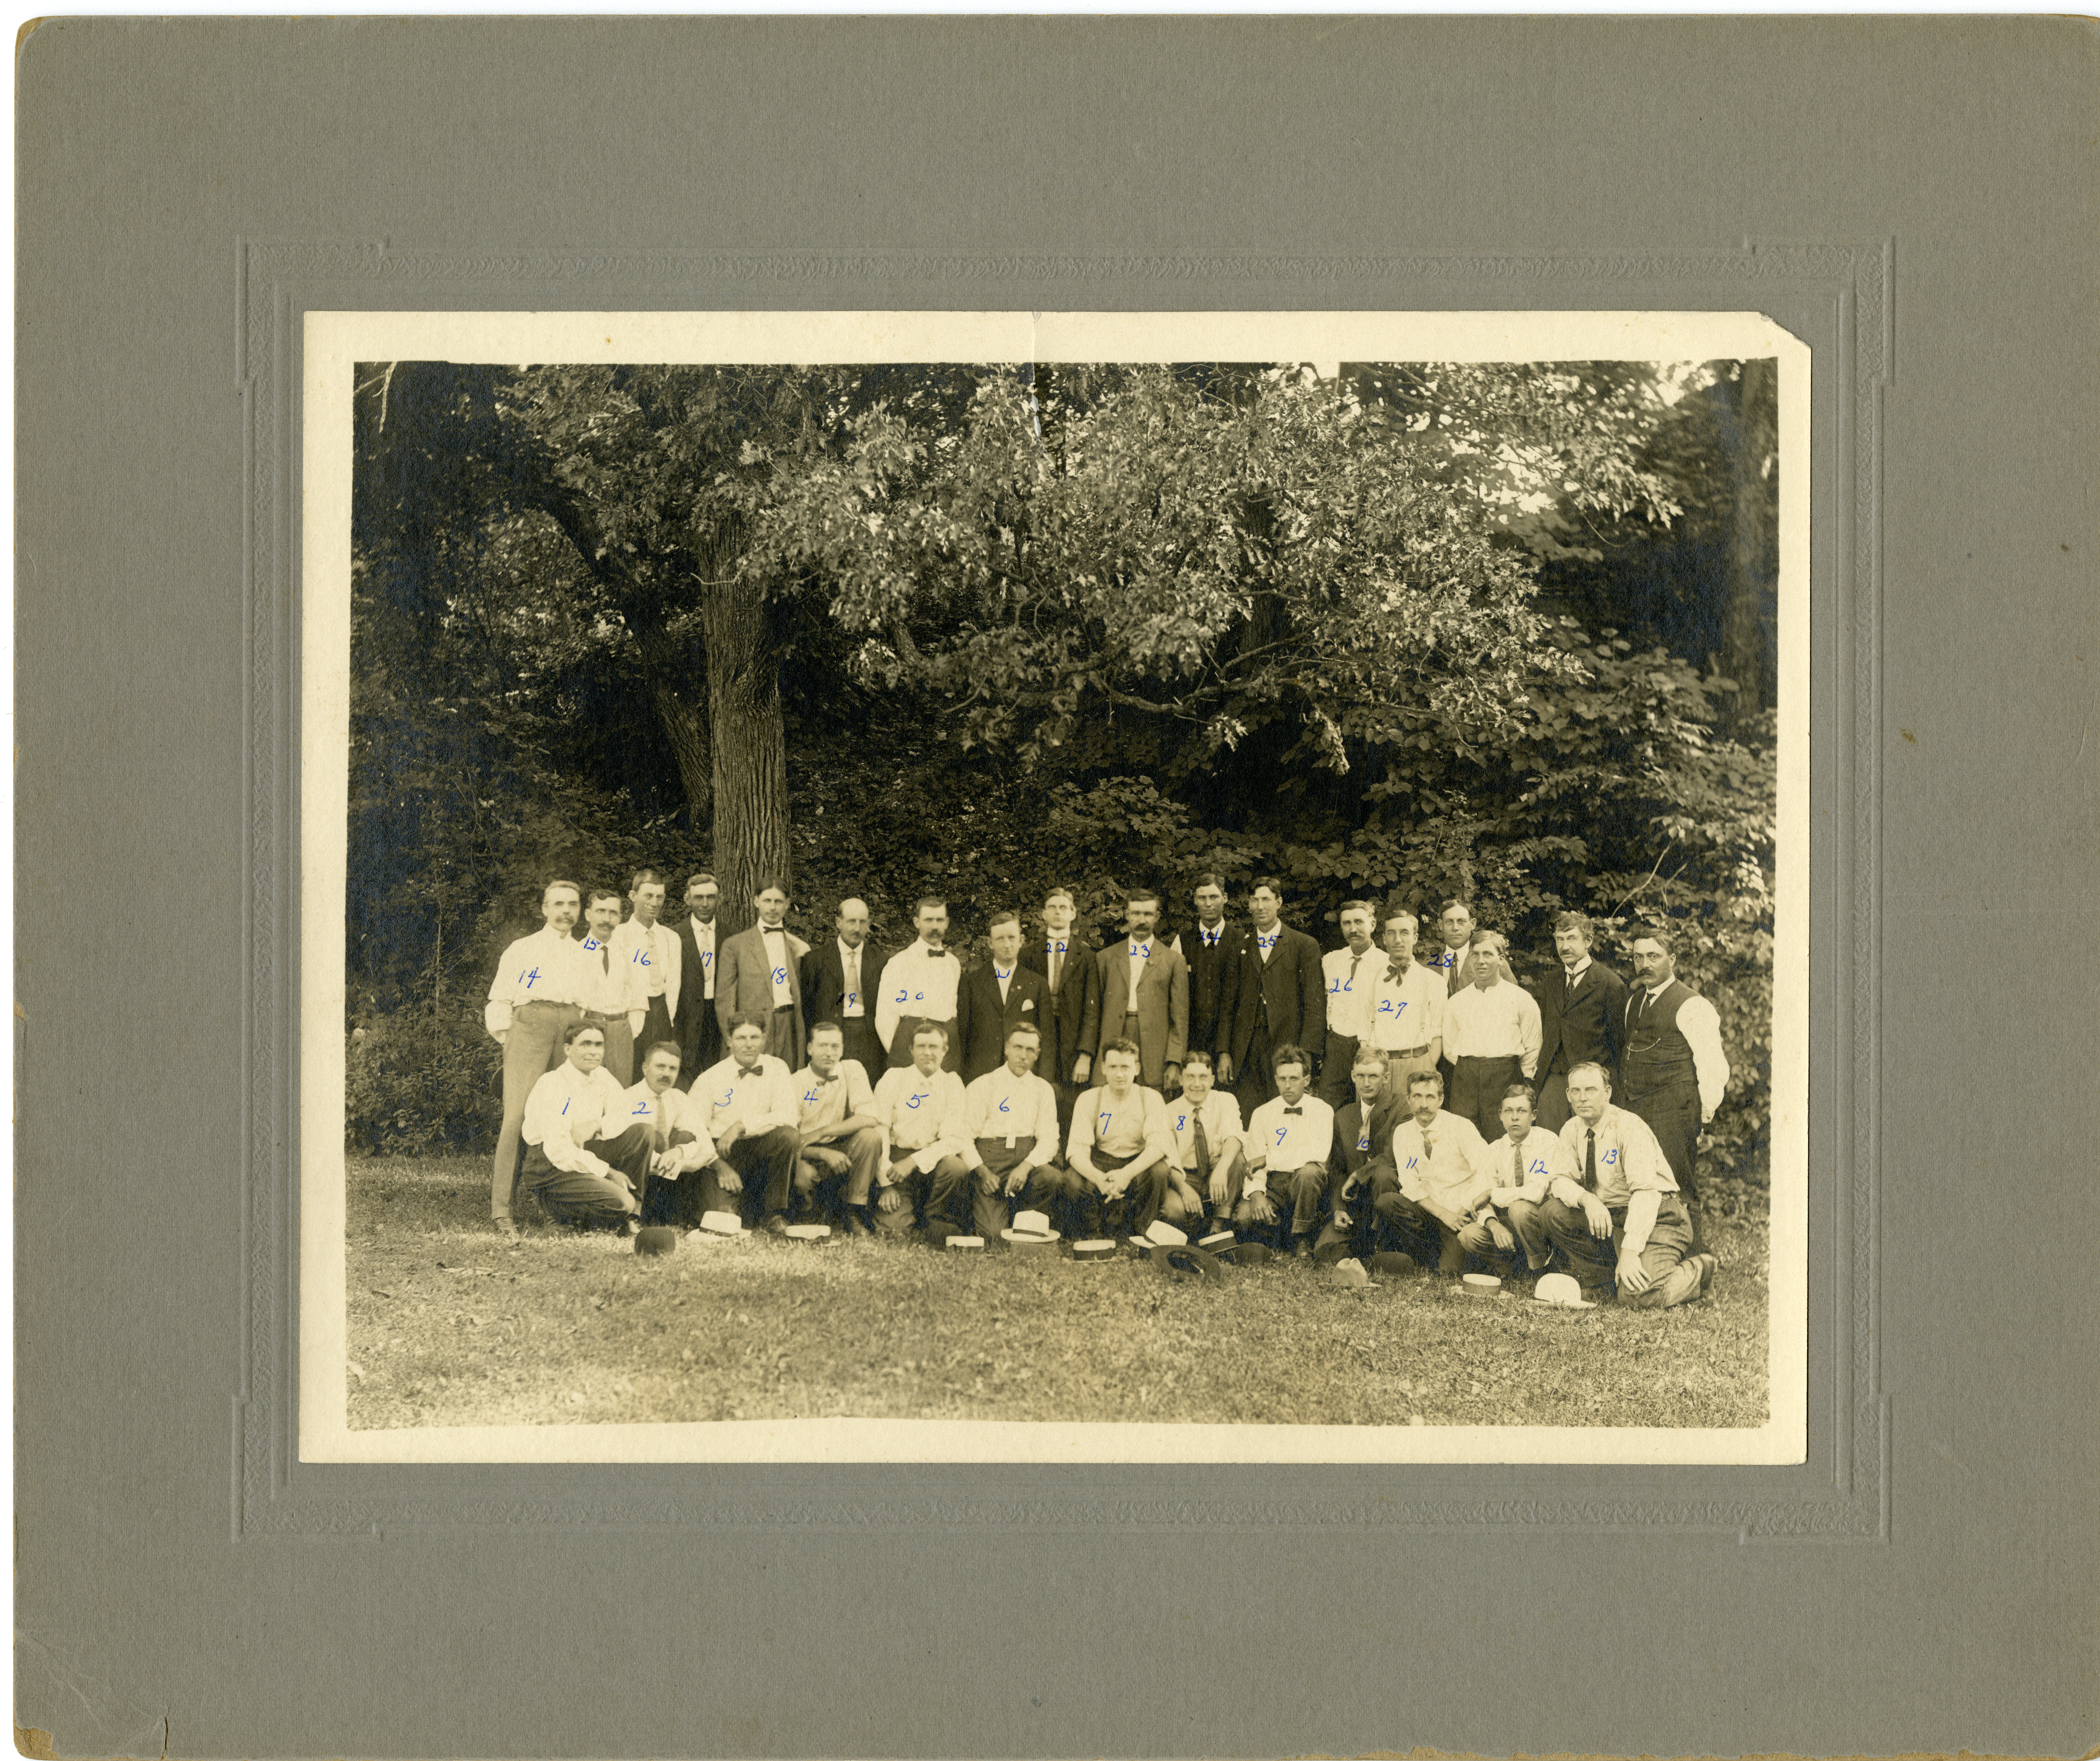 Group of men outside pose for a photo.